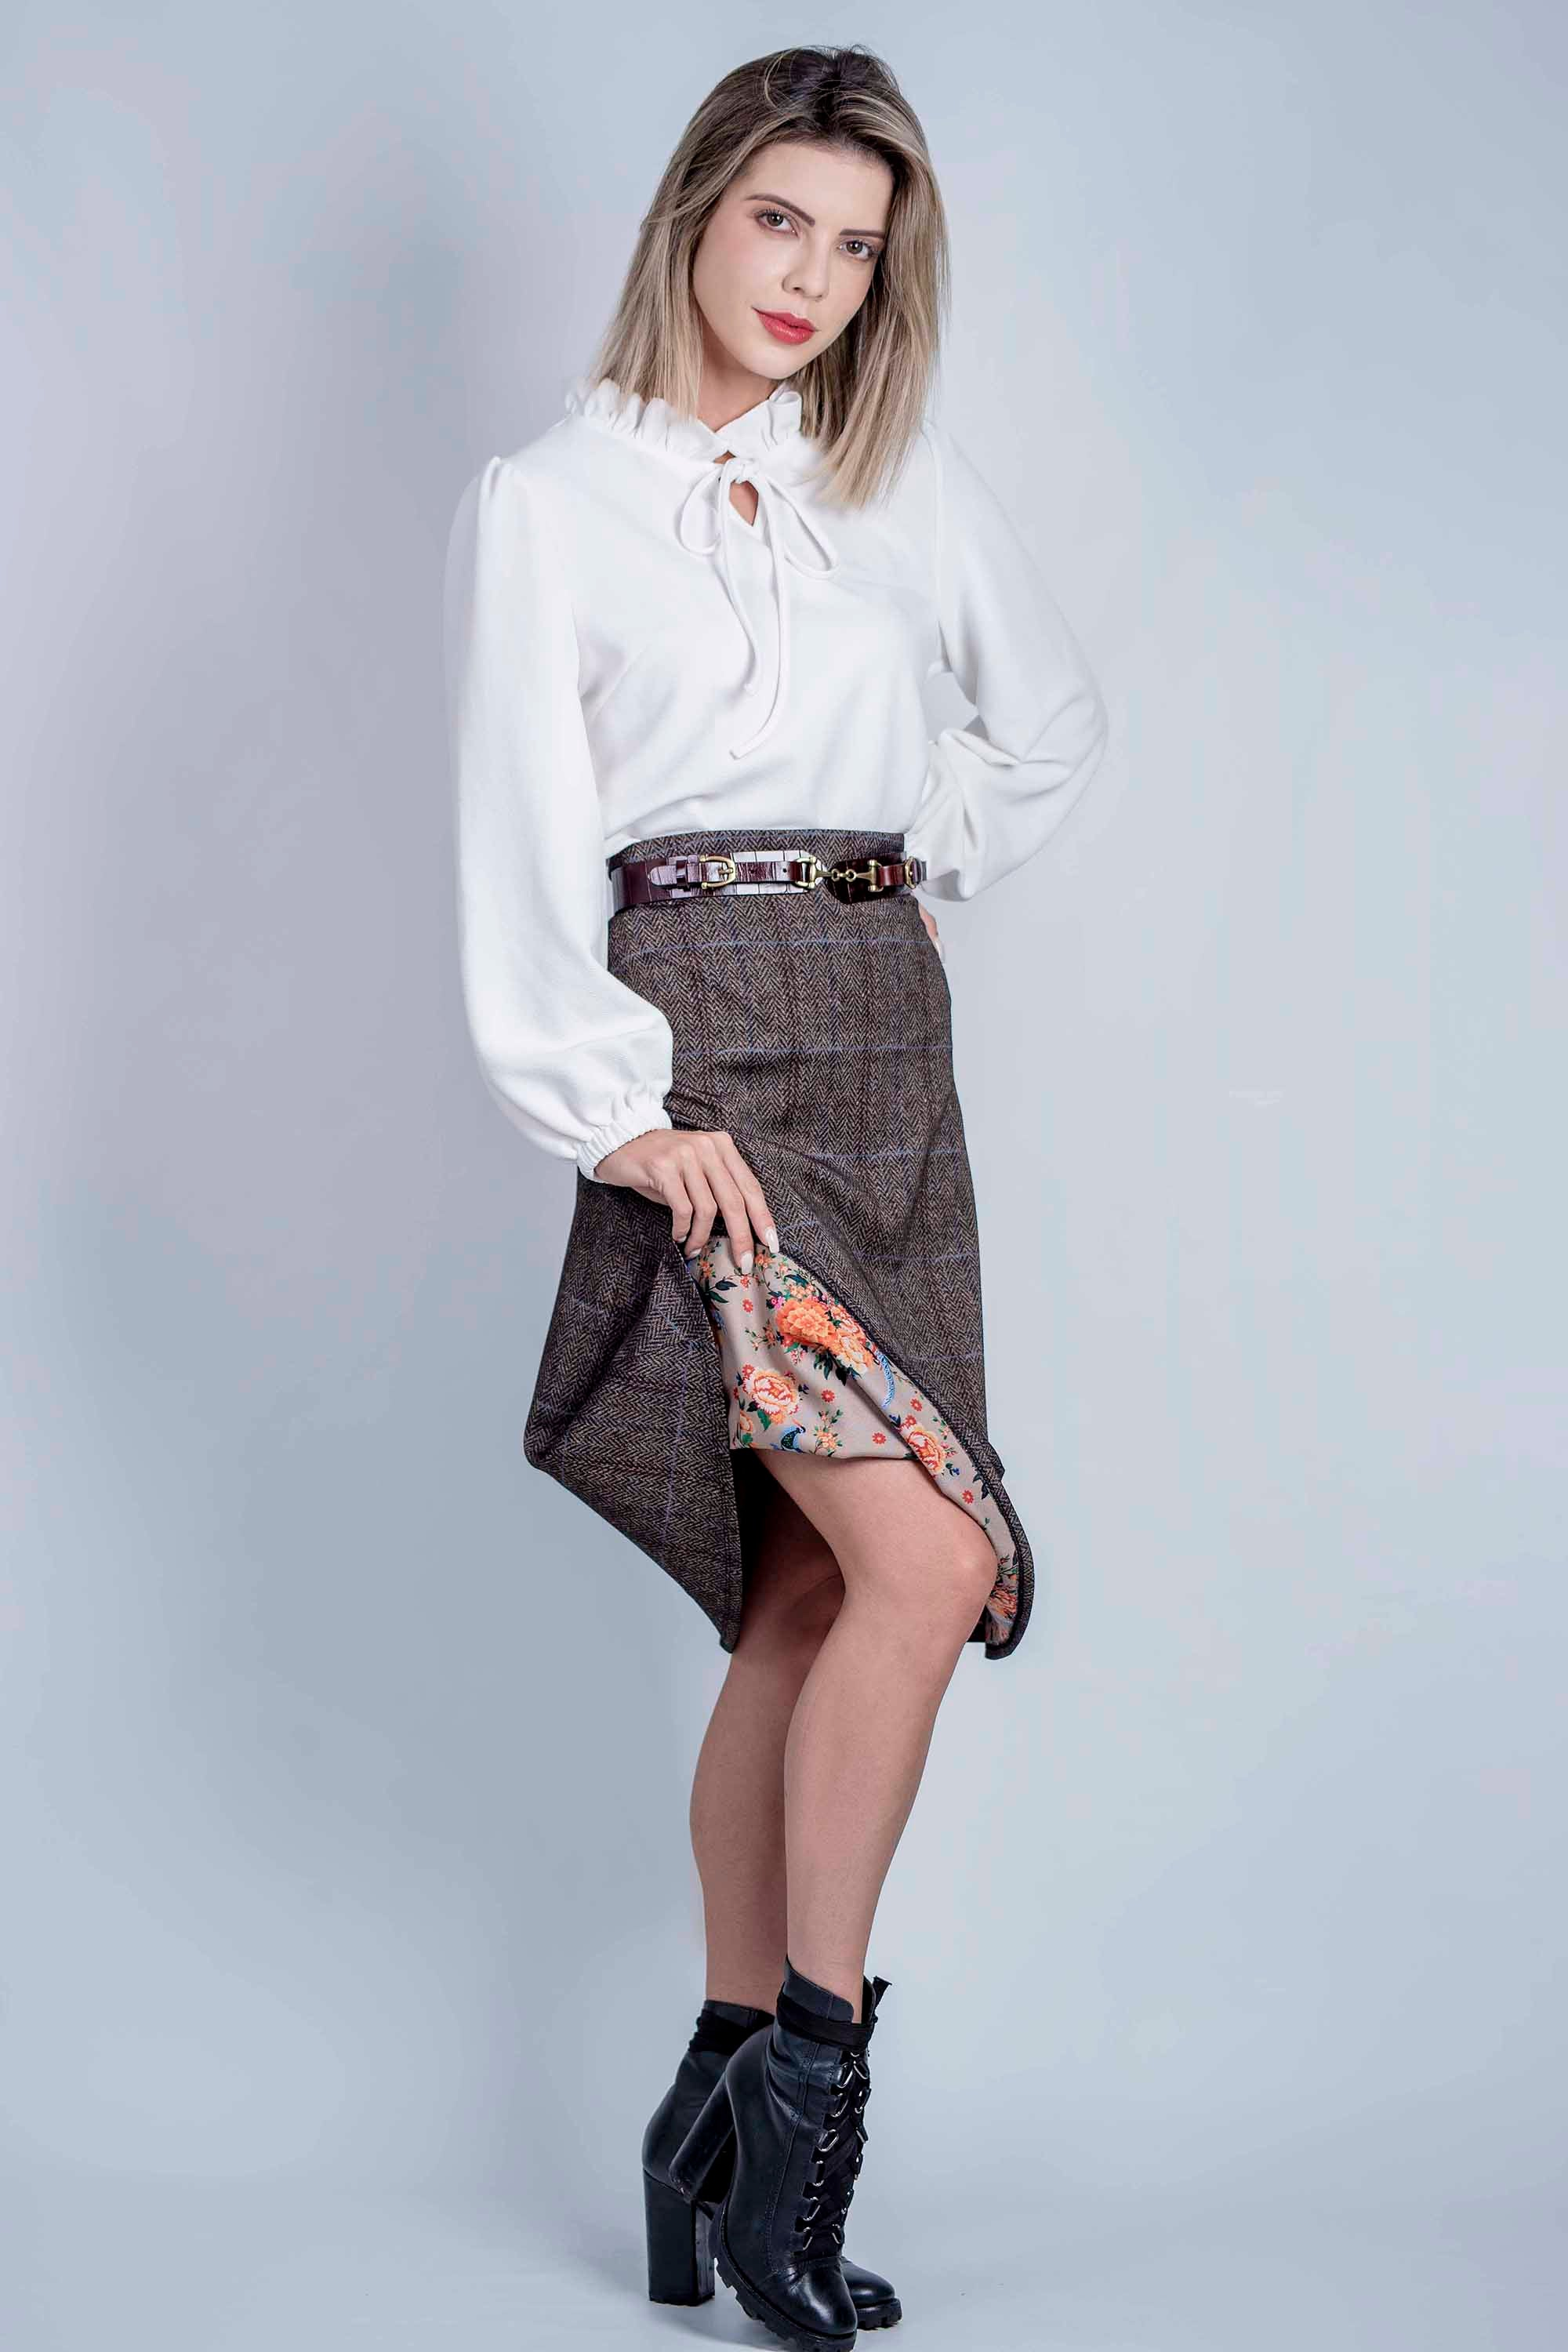 Hartwell Pat Travel Tweed Skirt for Ladies in Brown / Blue Check Tweed